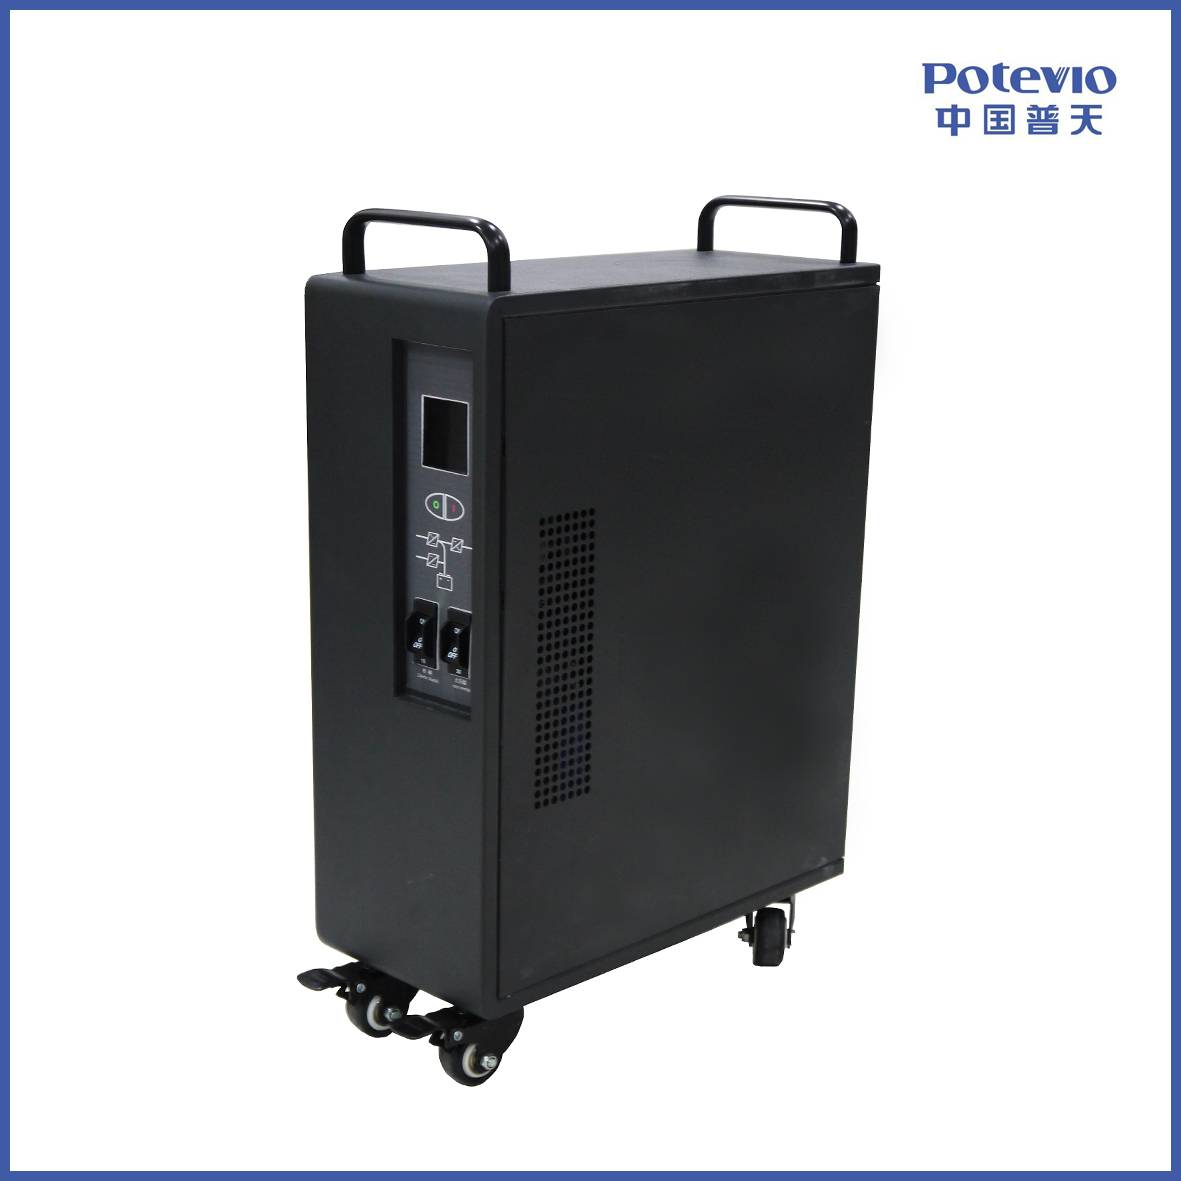 Online UPS IP 2KVA- 15KVA industry frequency input 110v / 120v 50 Hz for industry, medical equipment